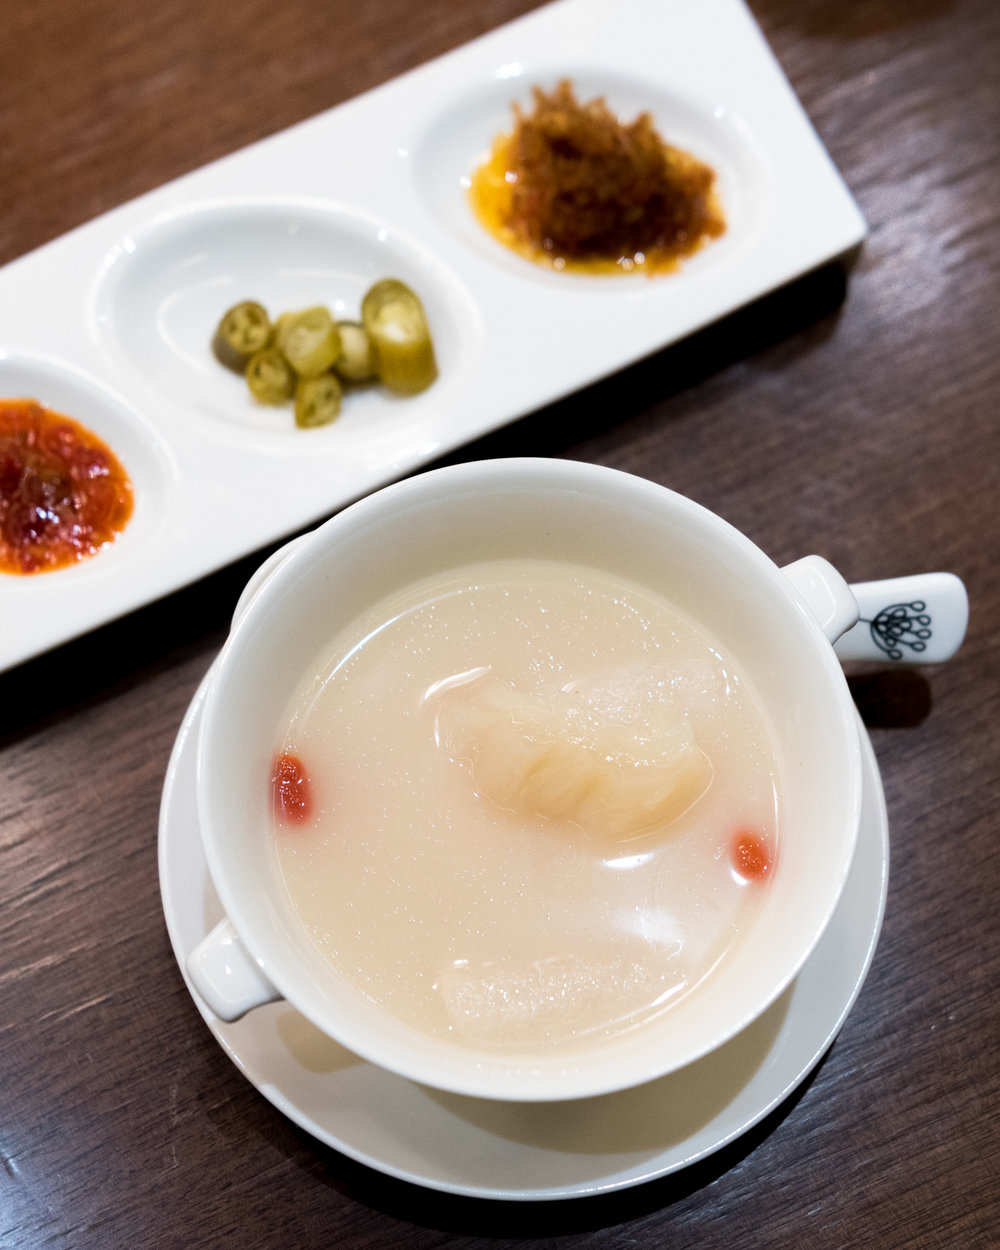 Double-boiled Fish Maw with Bamboo Pith in Fish Bone Broth  Hai Tien Lo - Pan Pacific Singapore